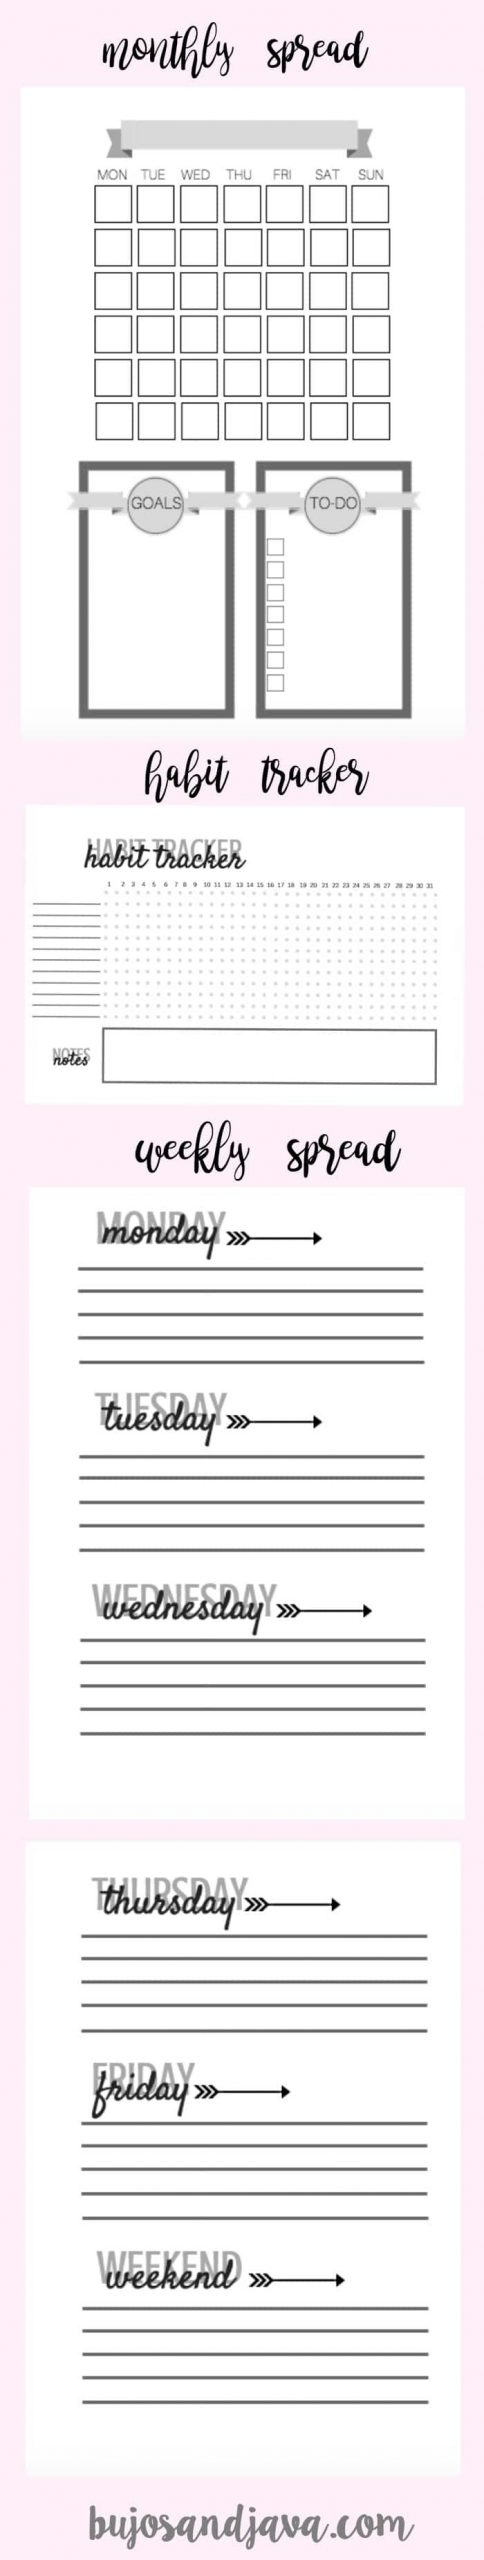 Free Bullet Journal Printables: Weekly, Monthly, And Habit